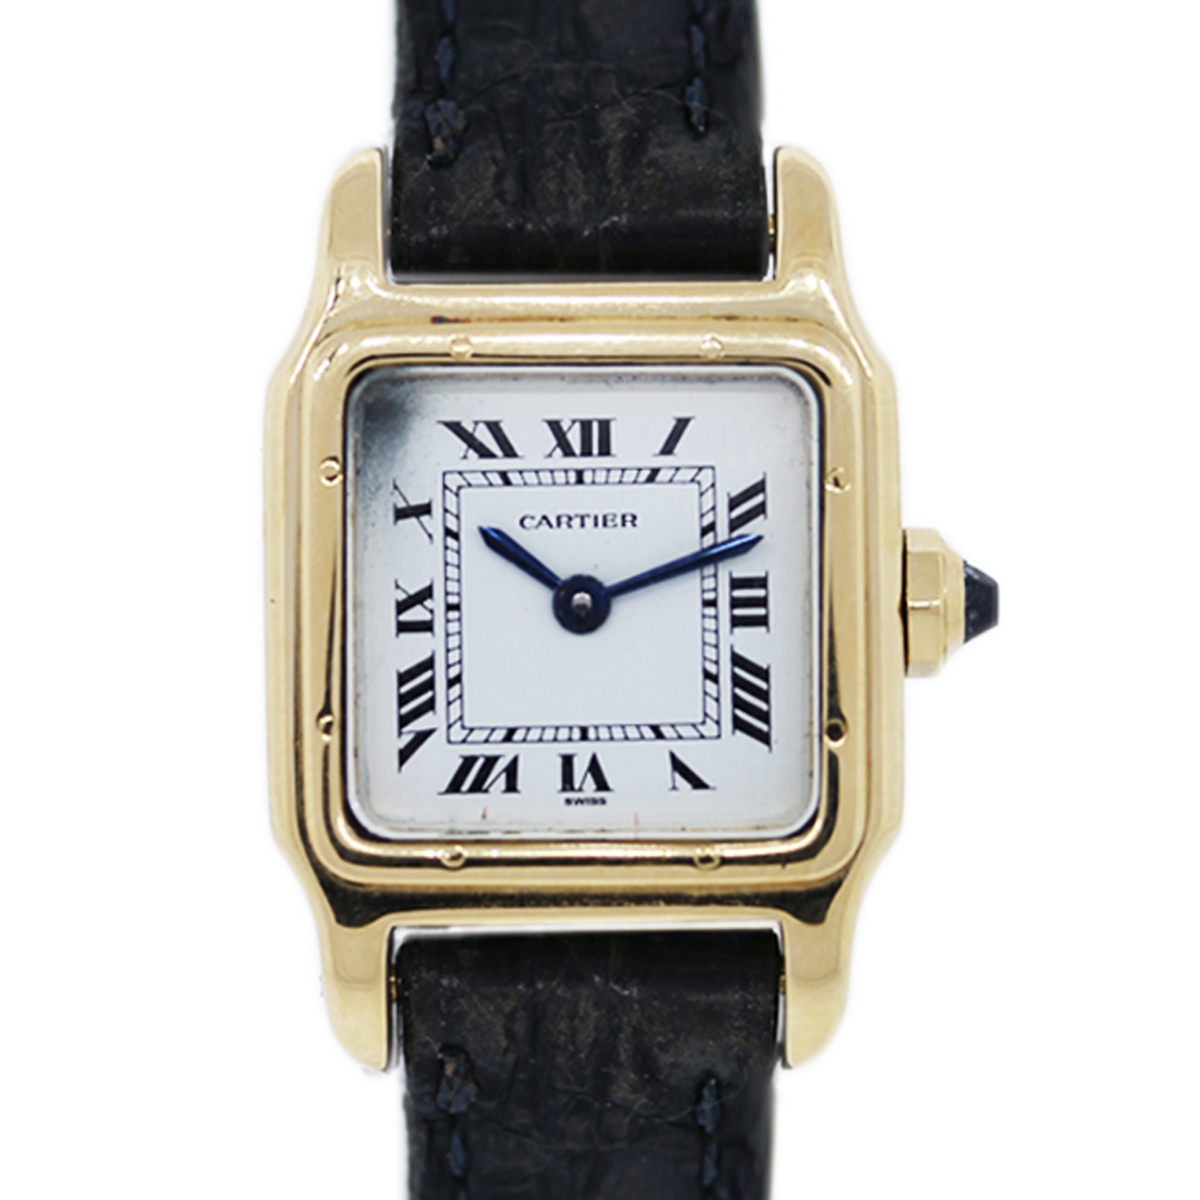 You are Viewing this Vintage Cartier Panther Watch